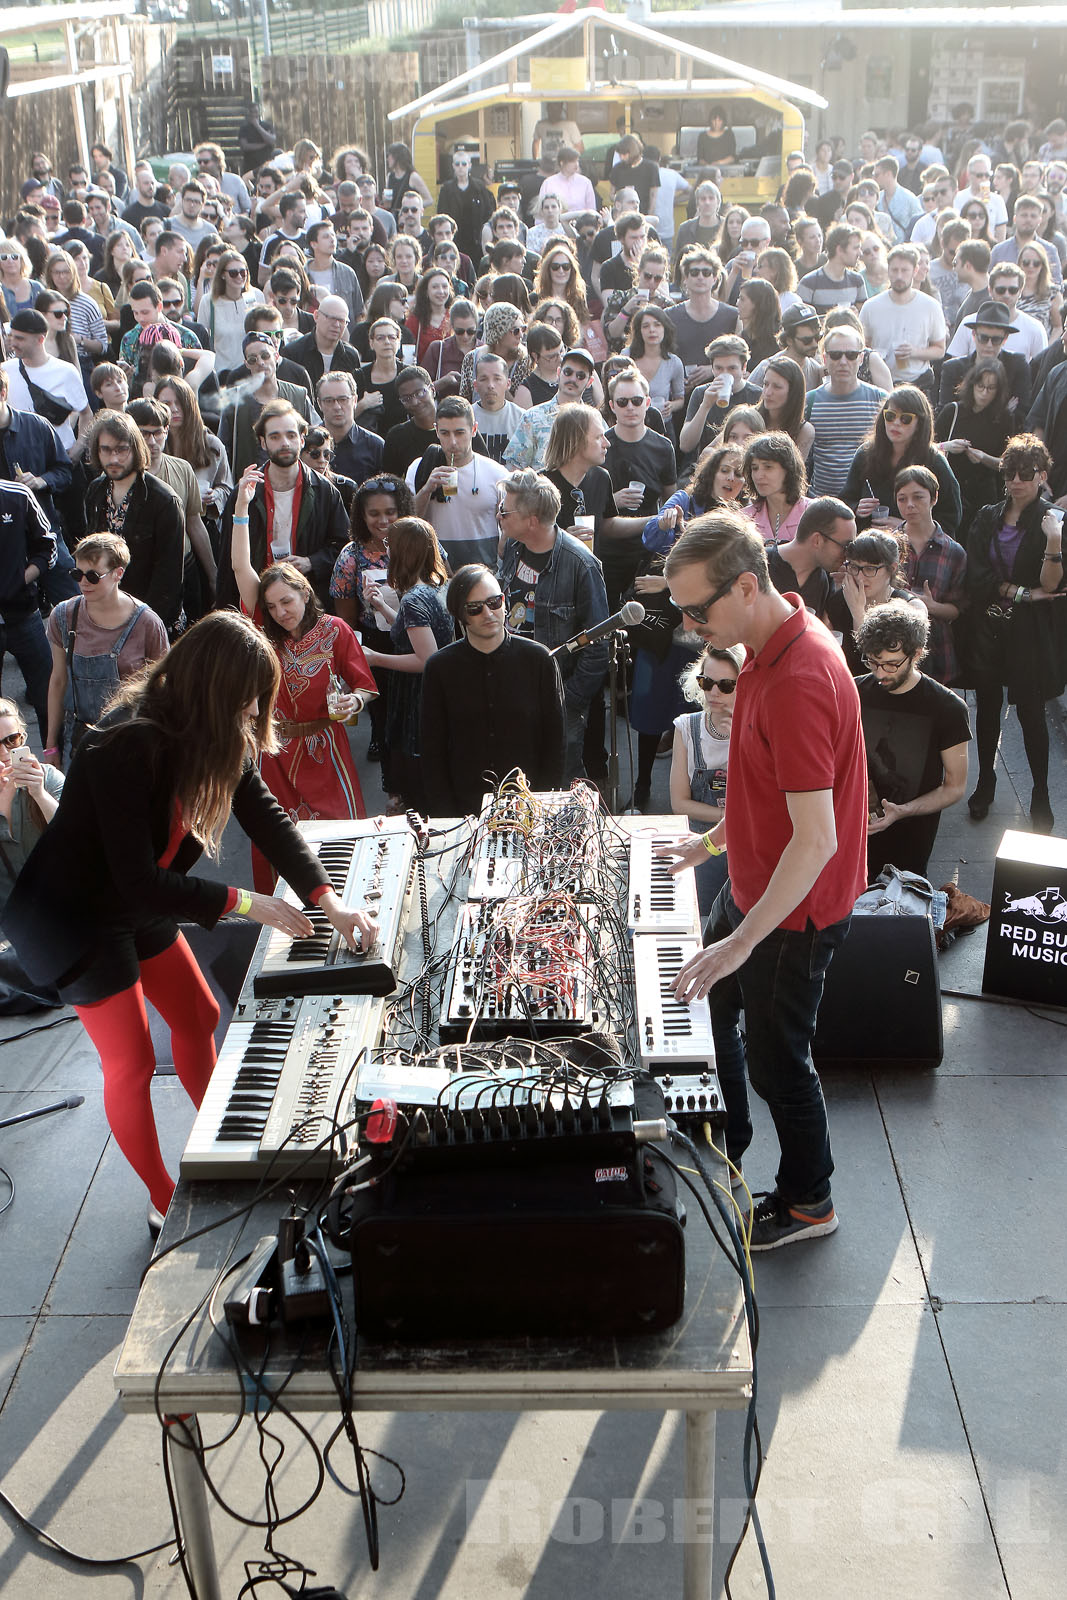 XENO AND OAKLANDER - 2018-05-20 - PARIS - La Station - Gare des Mines